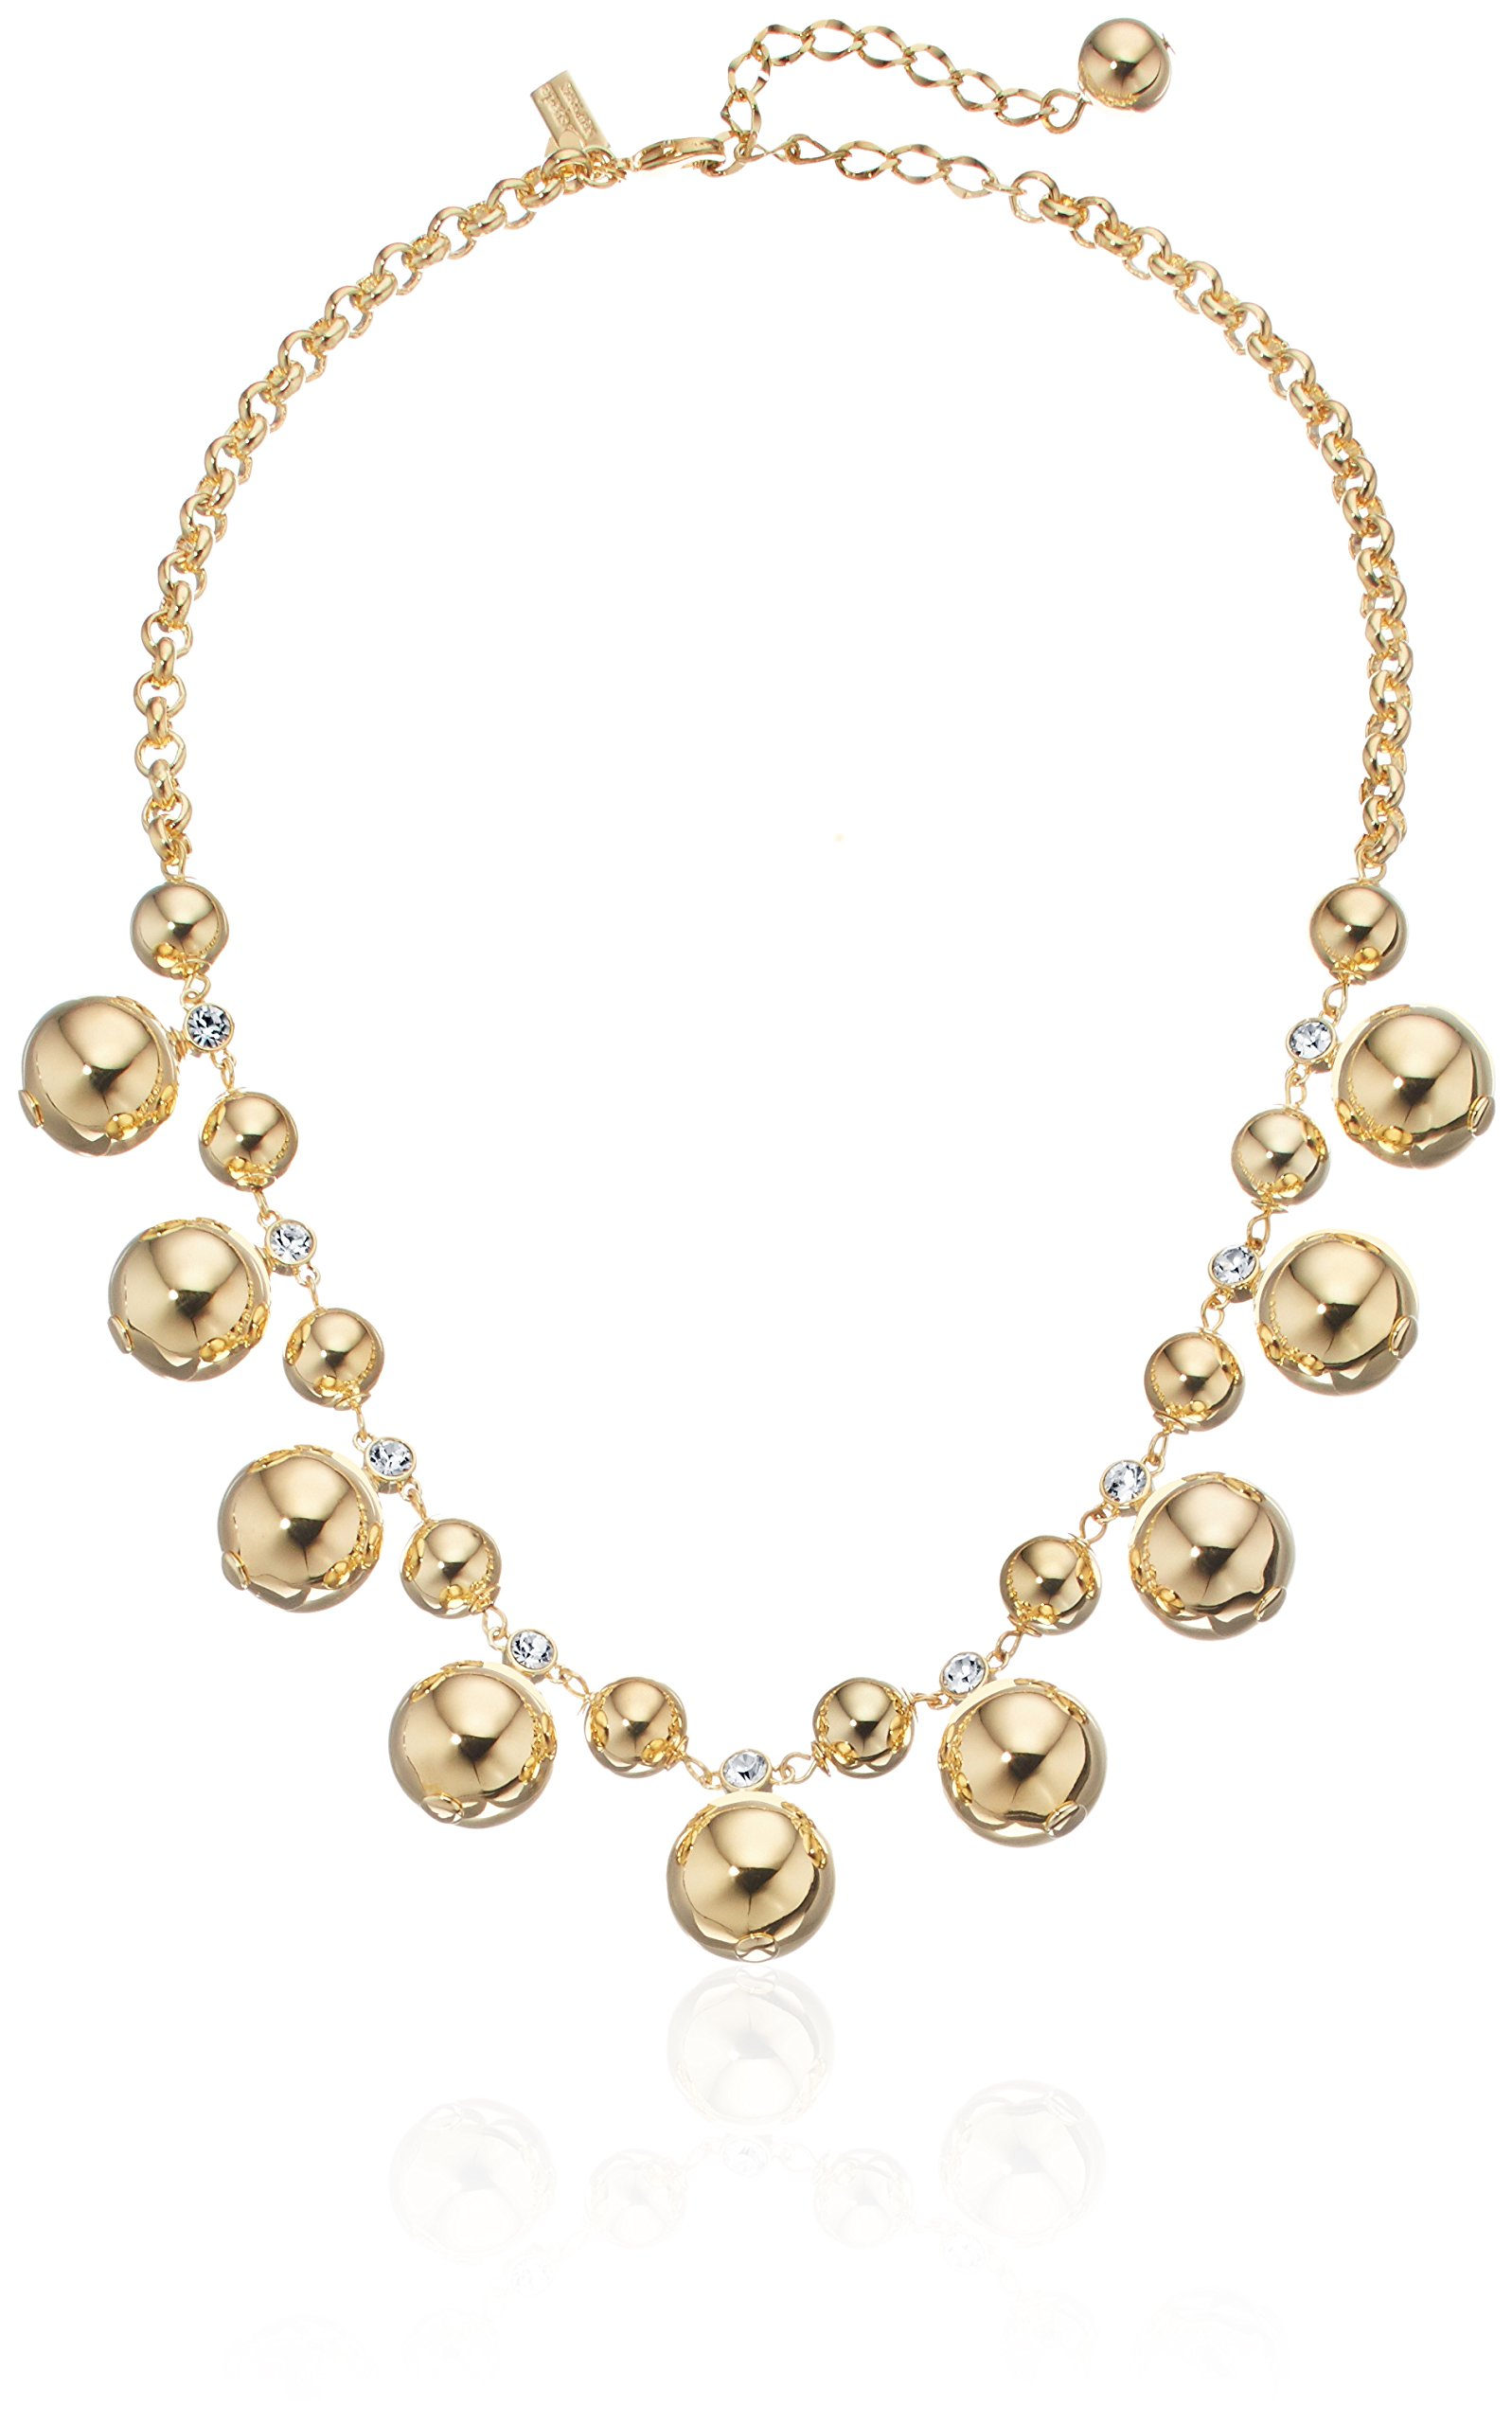 kate spade new york Golden Girl Short Gold Necklace by Kate Spade New York (Image #1)